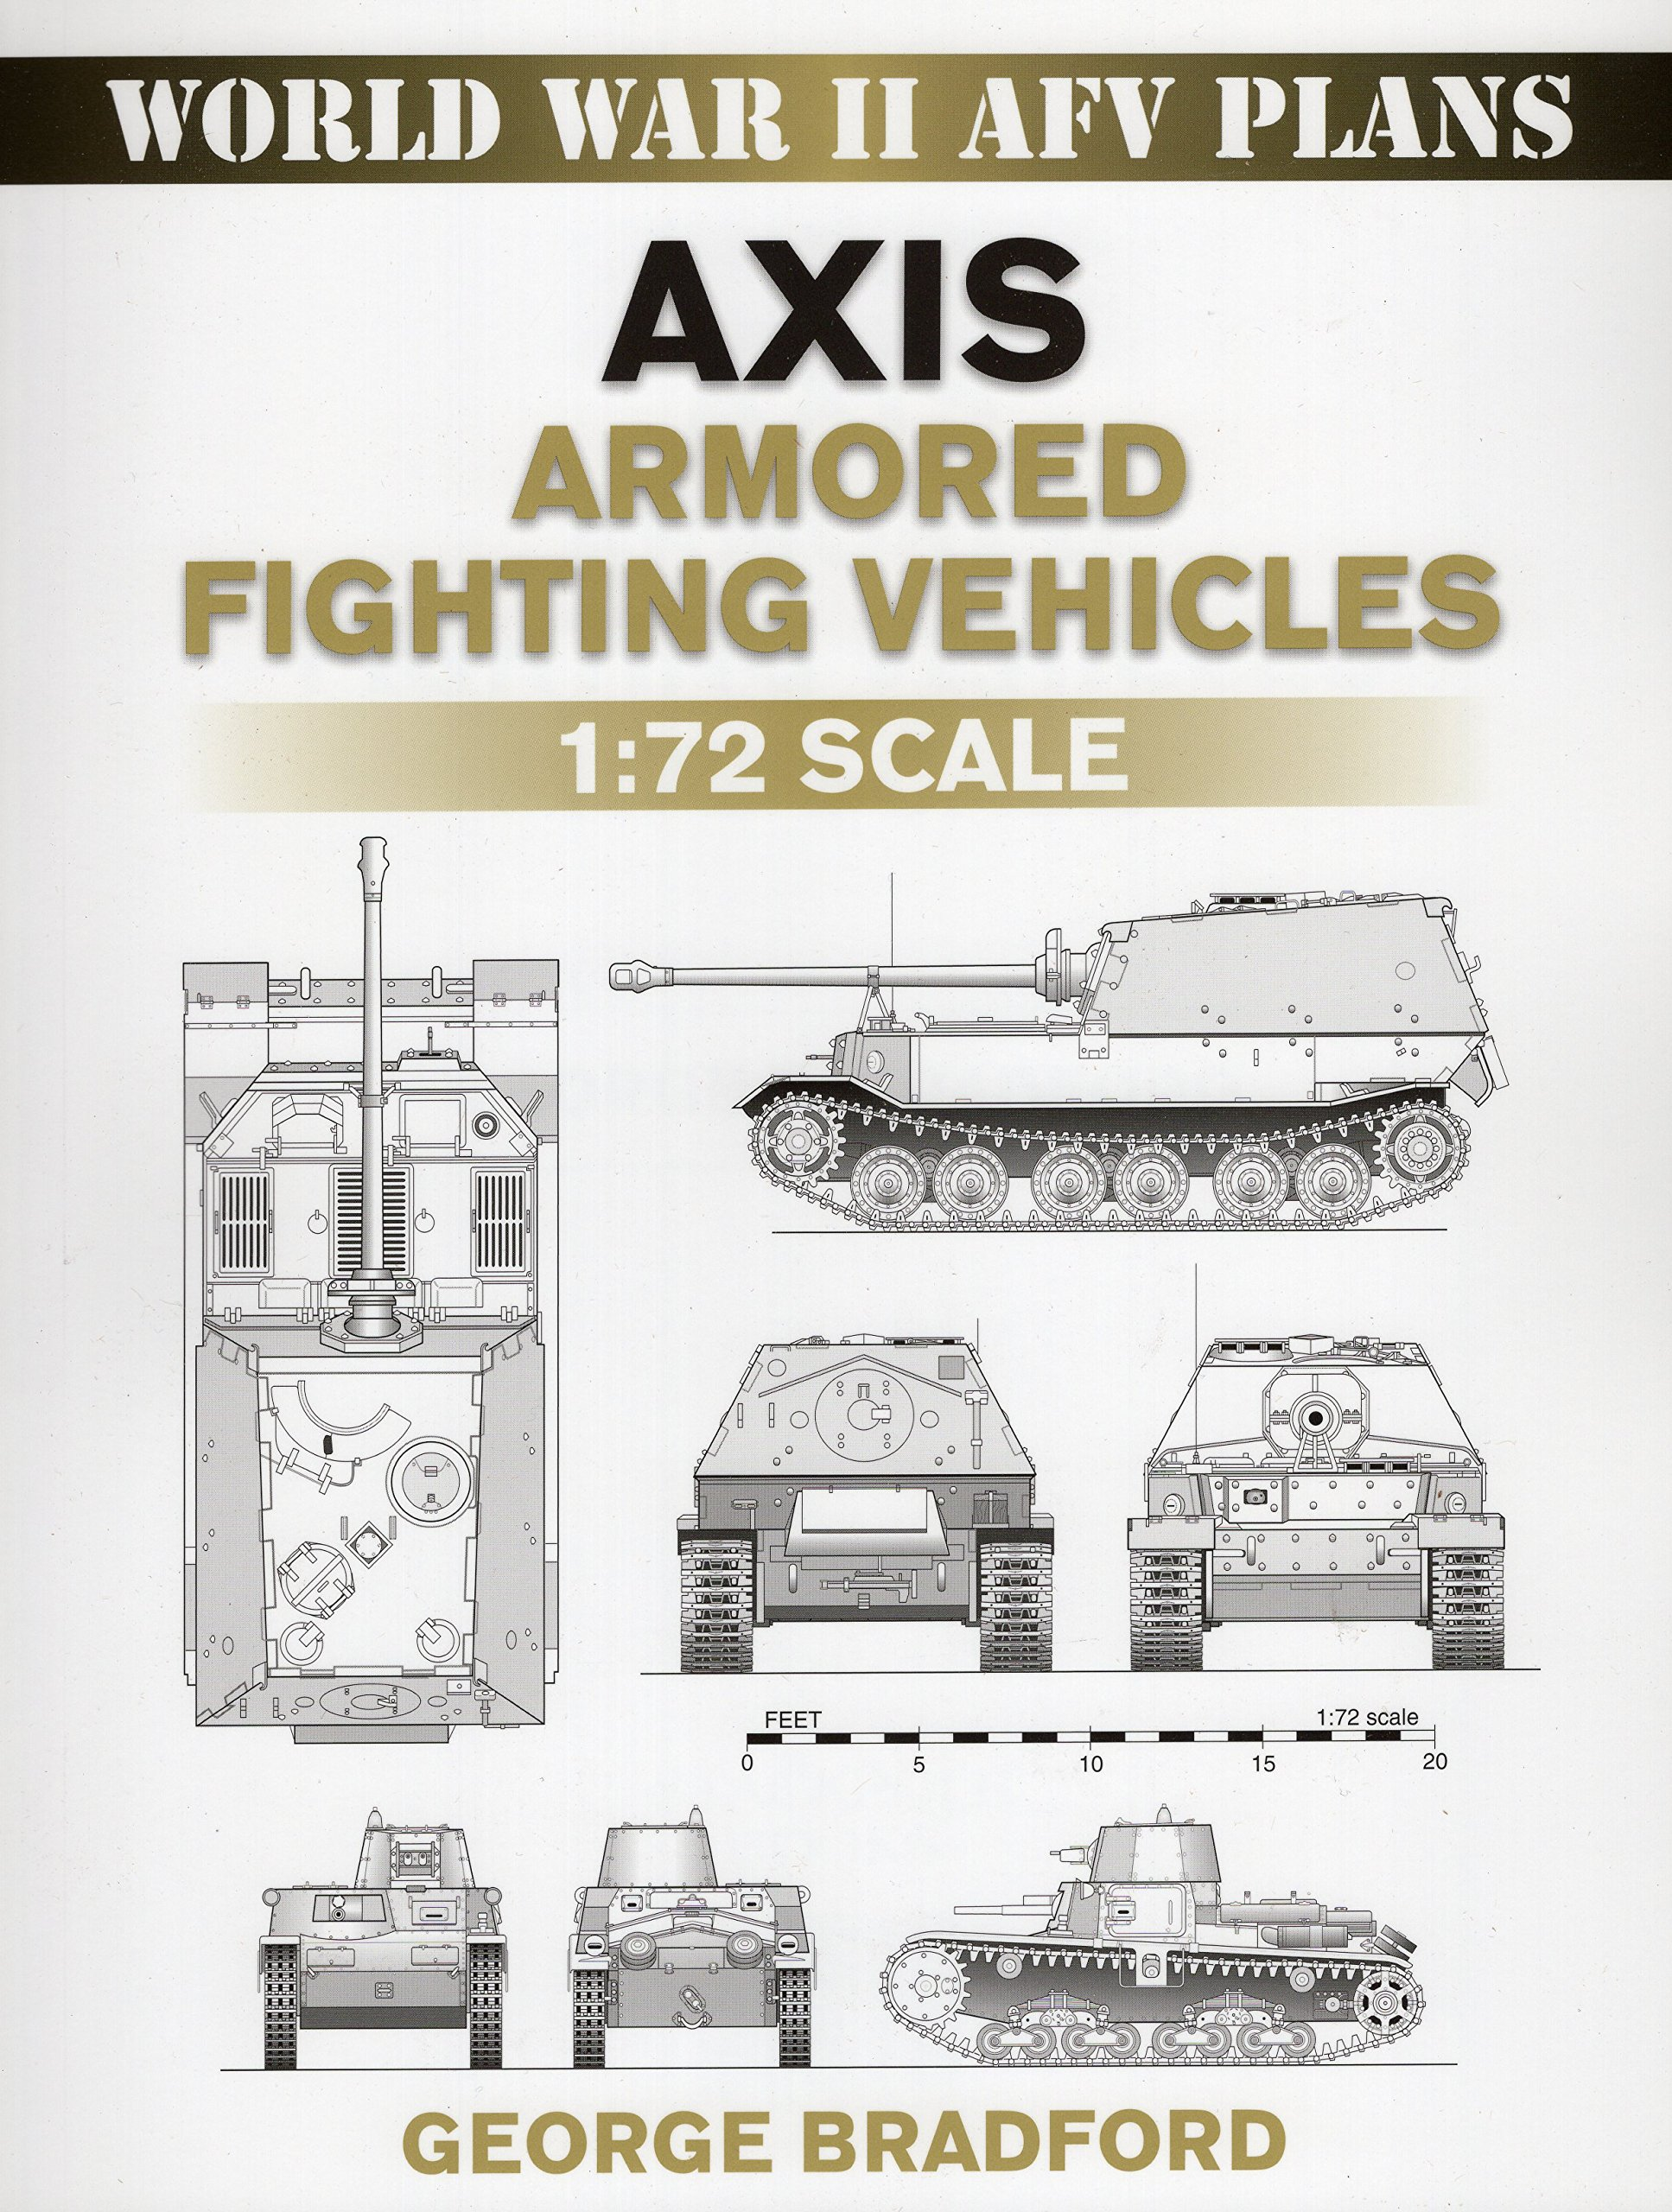 Image OfAxis Armored Fighting Vehicles: 1:72 Scale (World War II AFV Plans)